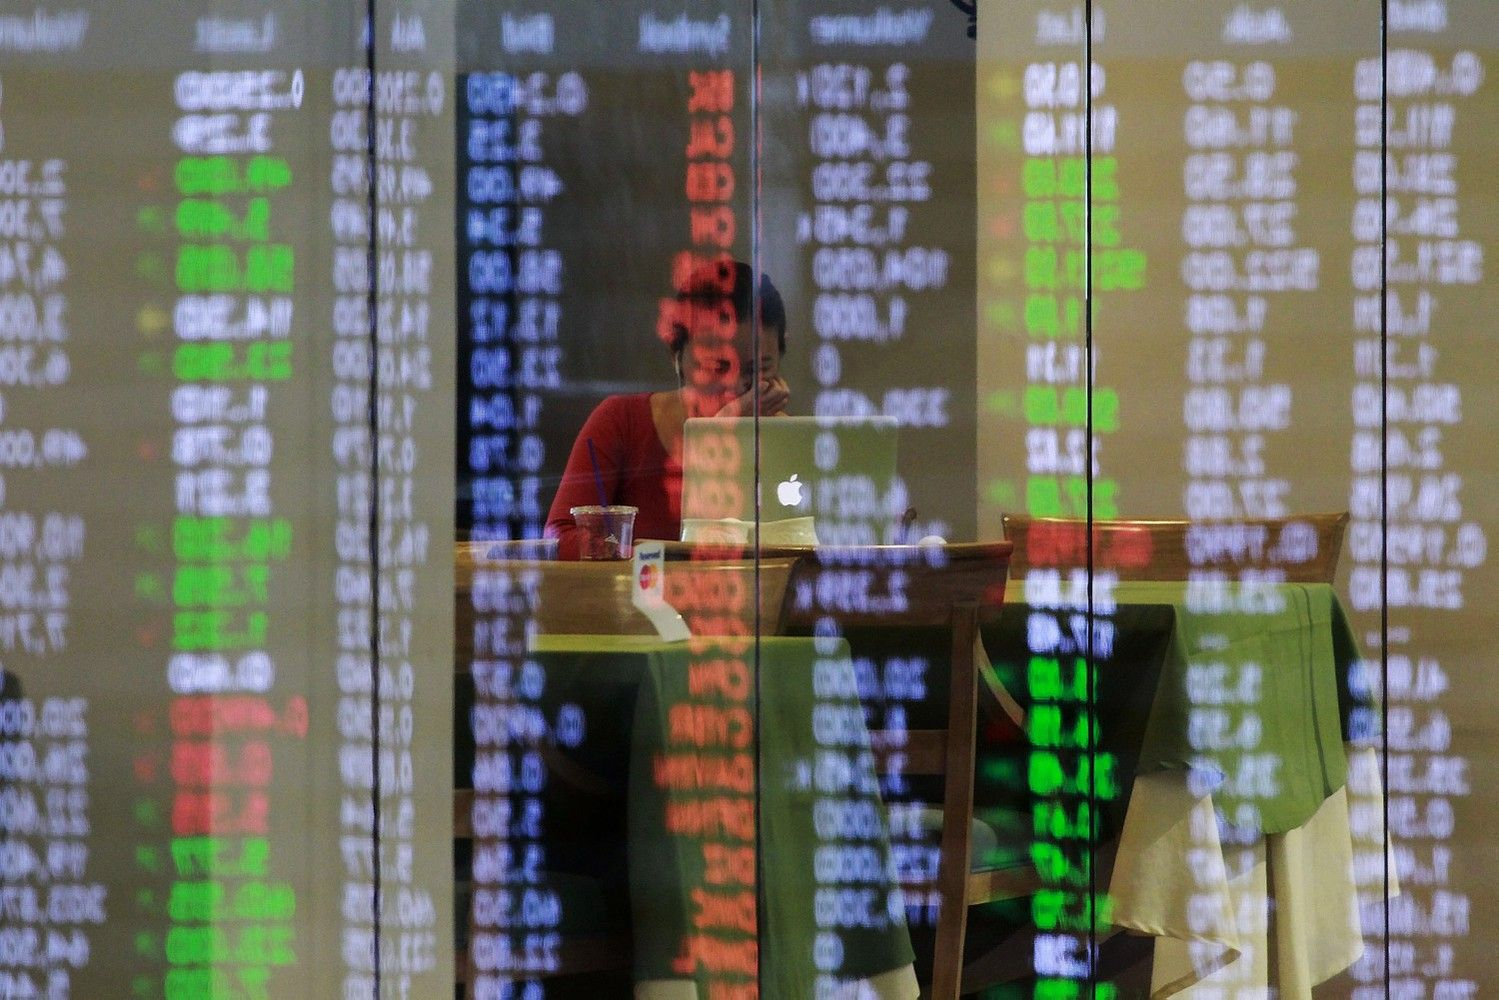 Asia Stocks Fall After Stellar Run; Korea Tumbles: Markets Wrap